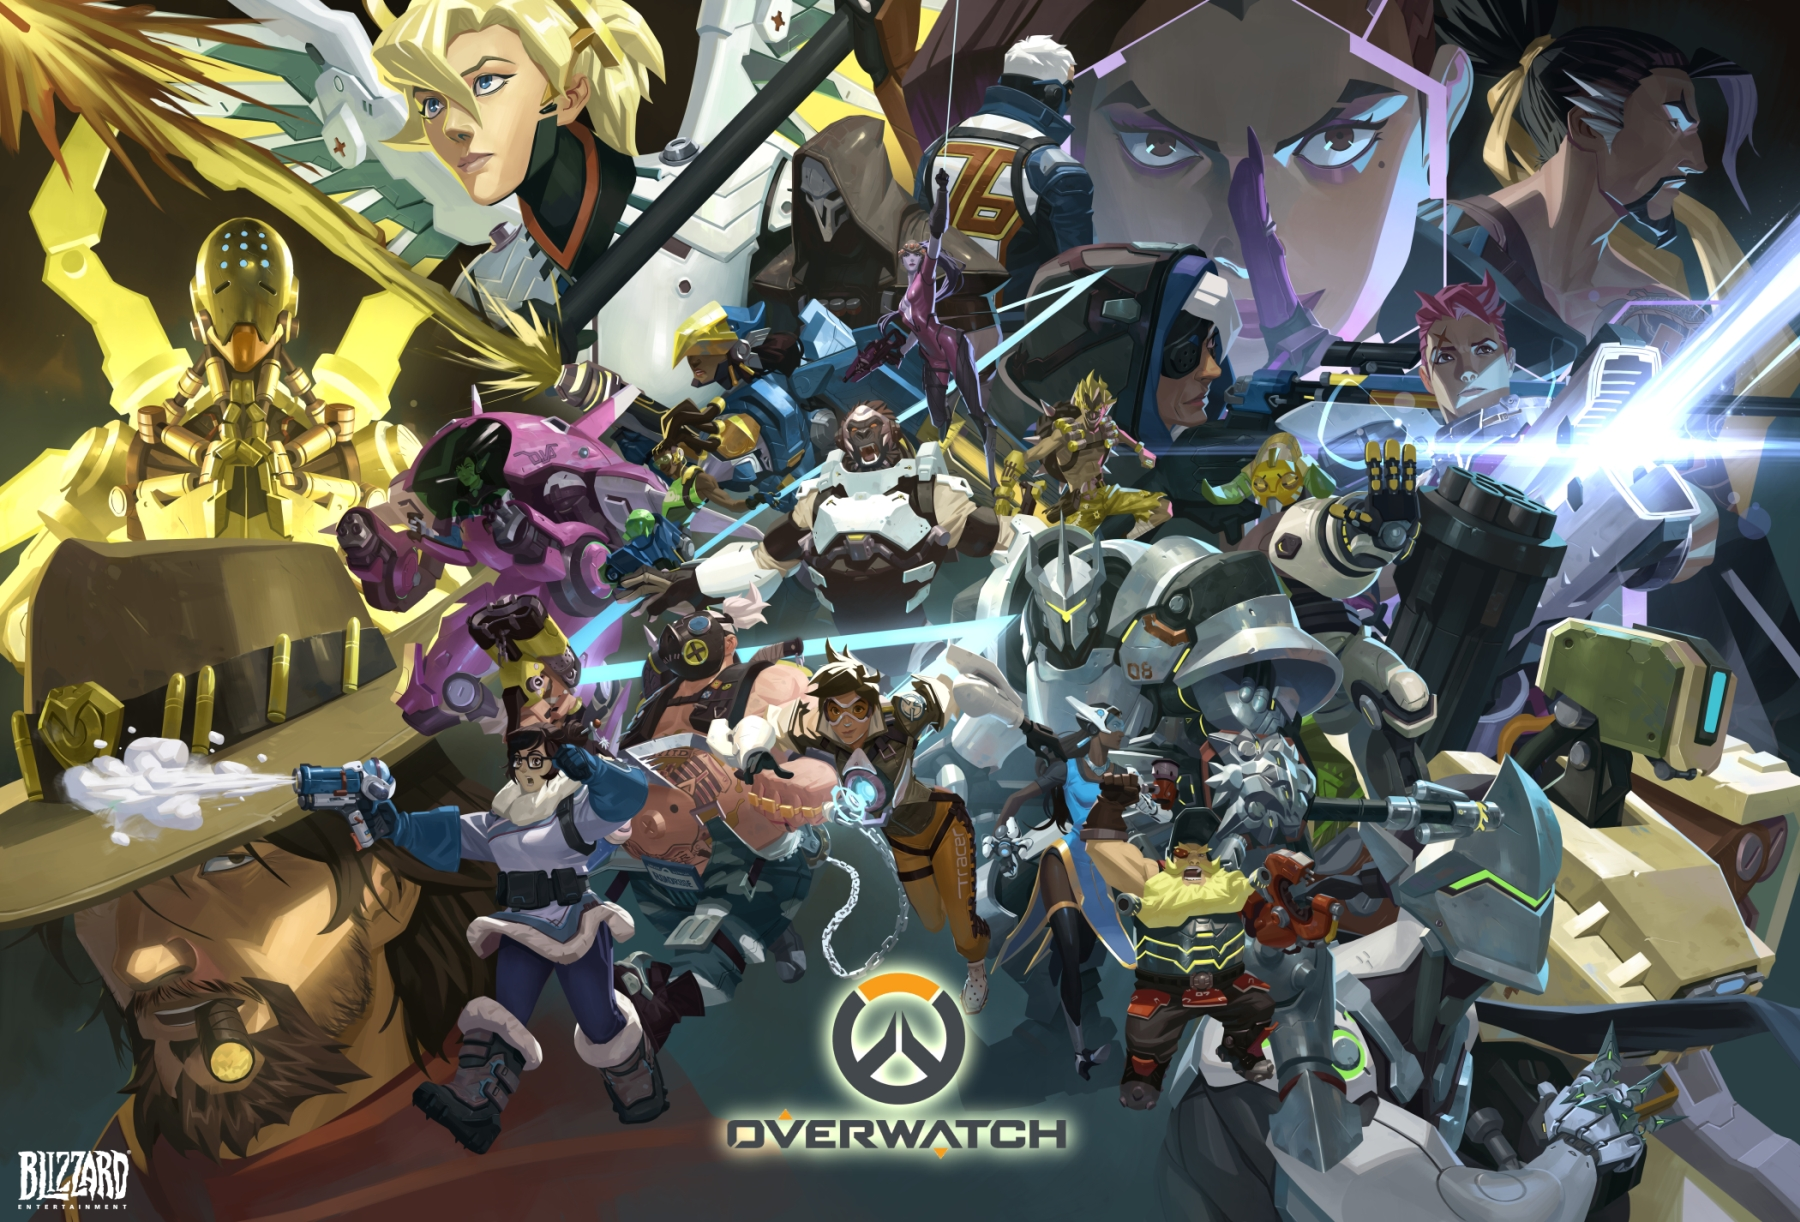 overwatch: free to play nel 2019?